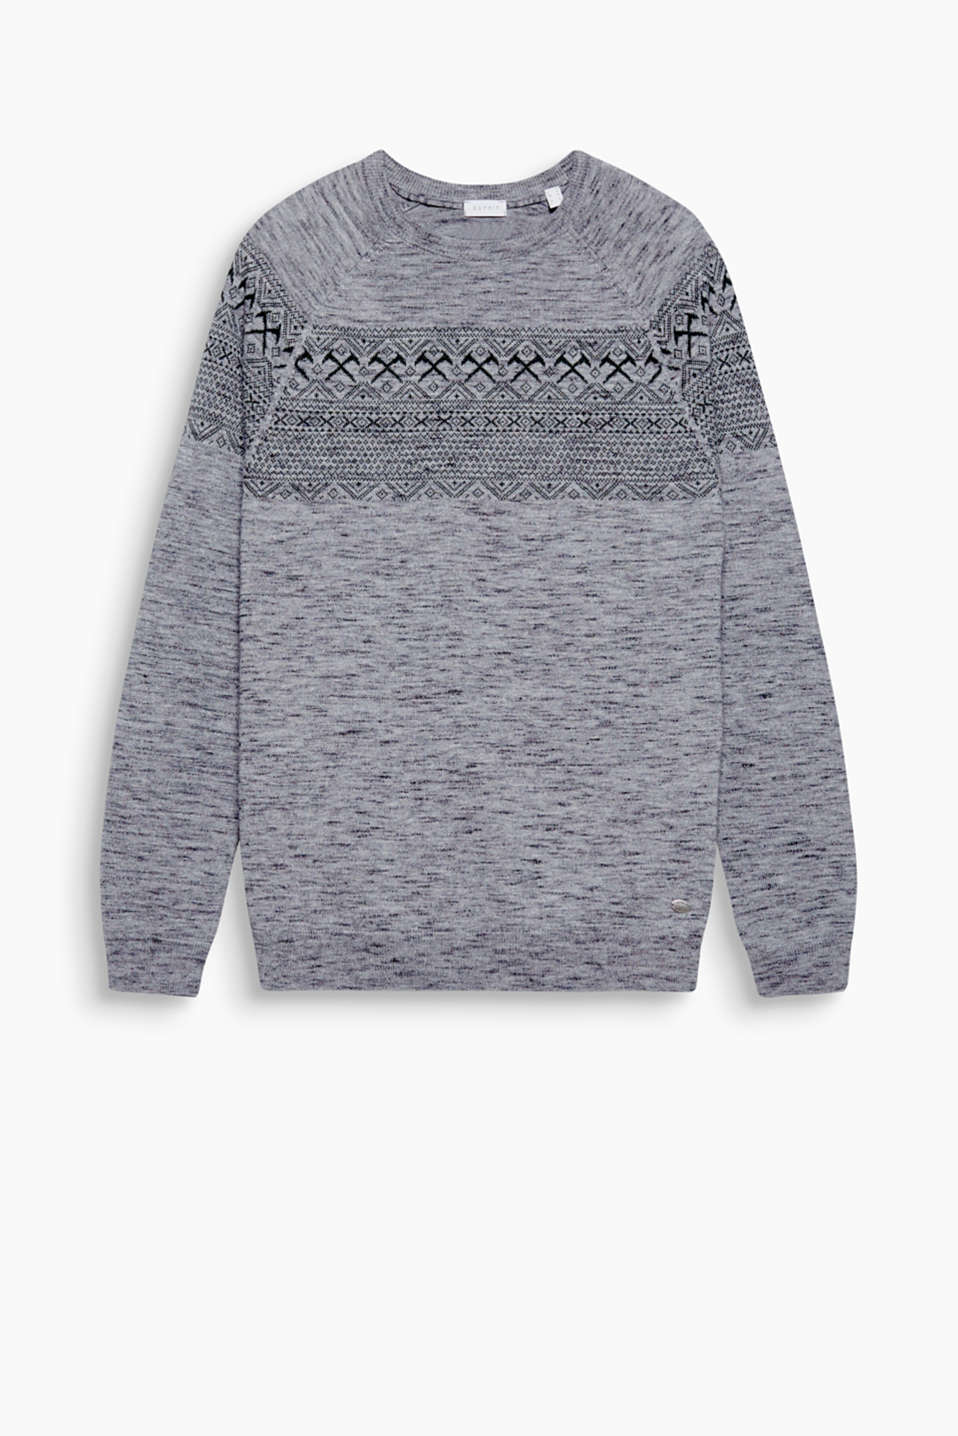 A fine jacquard knit and high-quality wool blend make this jumper a casual, head-turning piece.